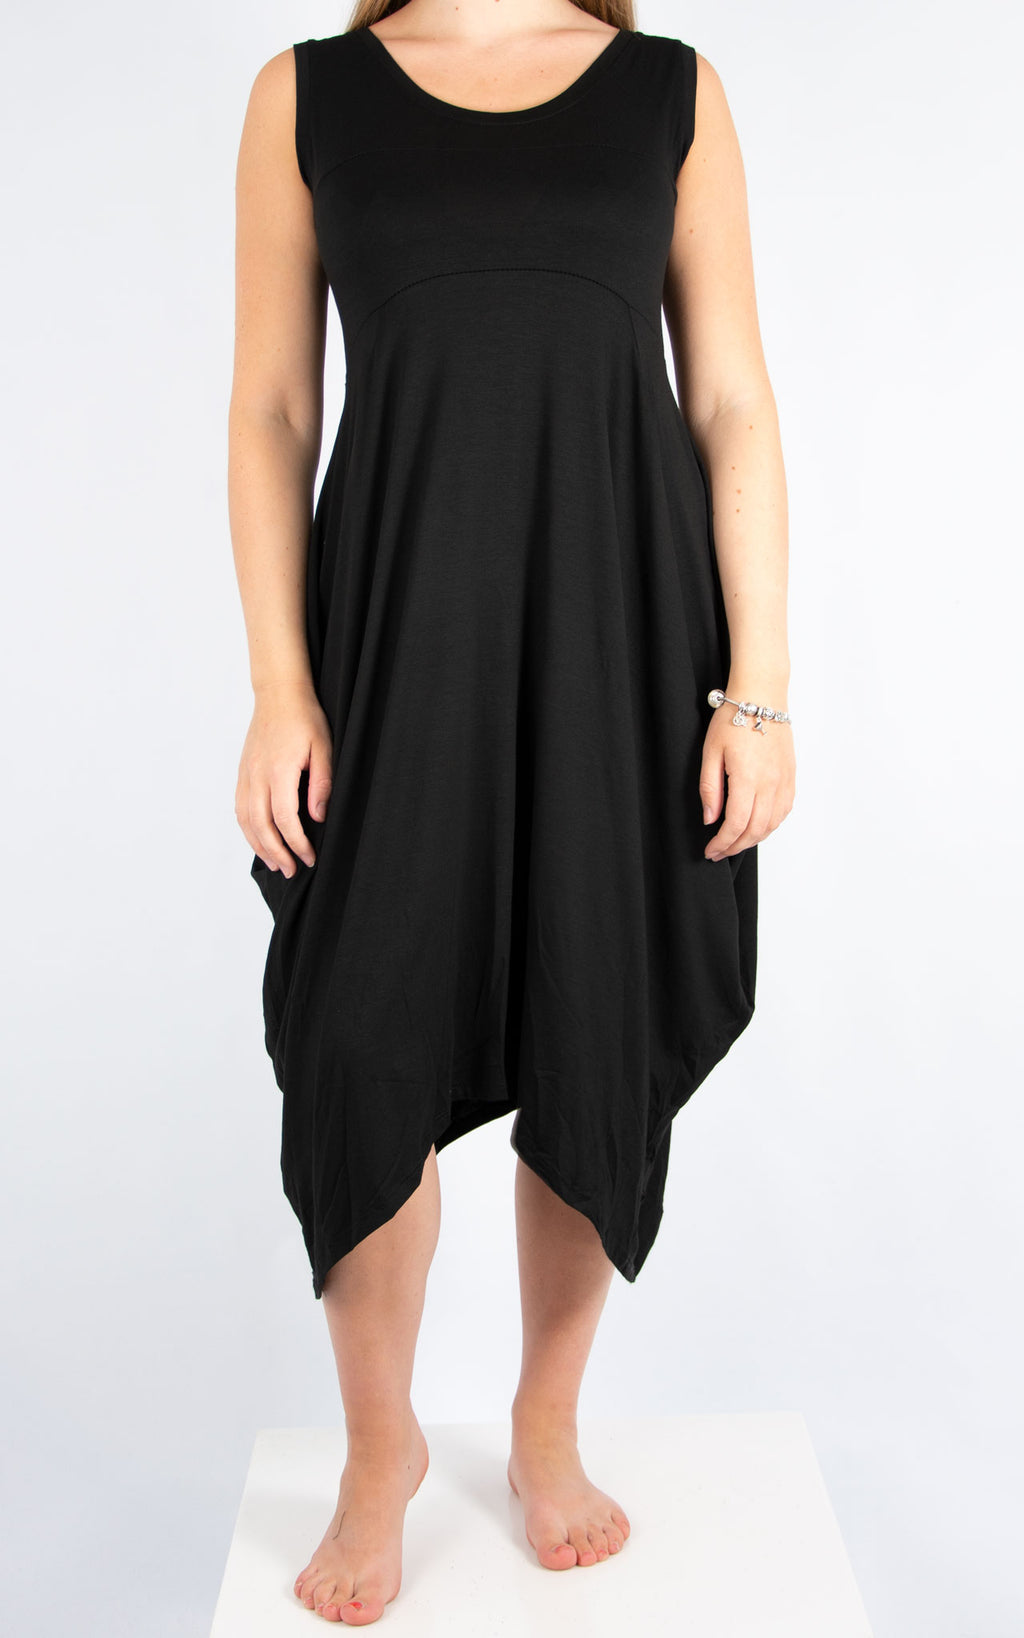 Black Simple Dress | Made In Italy